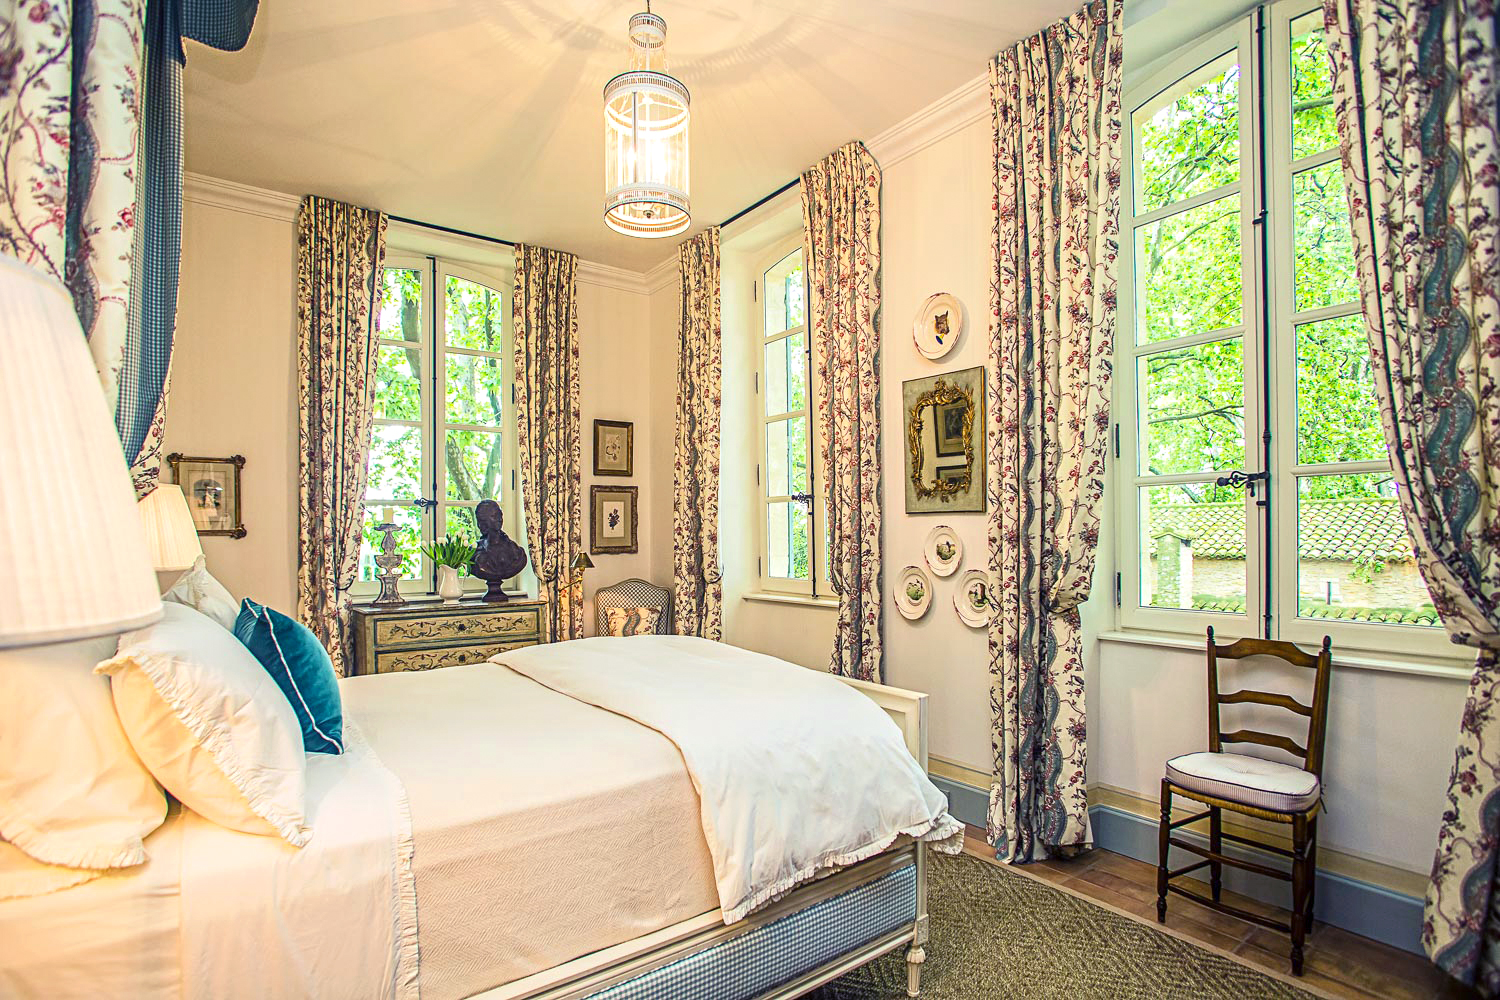 French Country Home Decor: Bedroom Inspiration